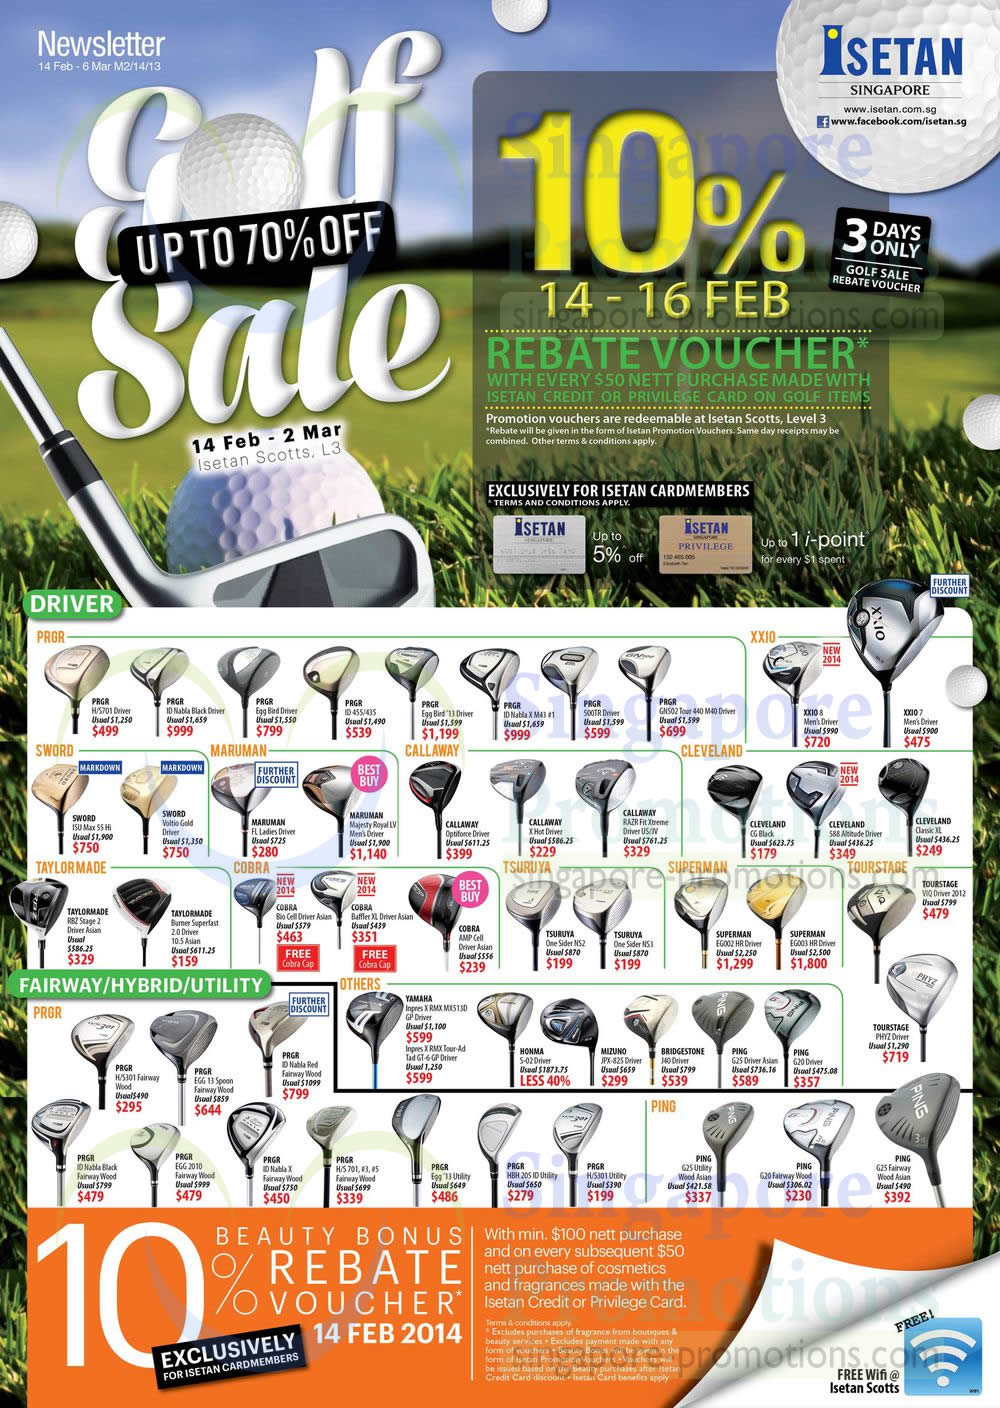 Driver, Fairway, Hybrid, Utility, Cardmember 10 Percent Off